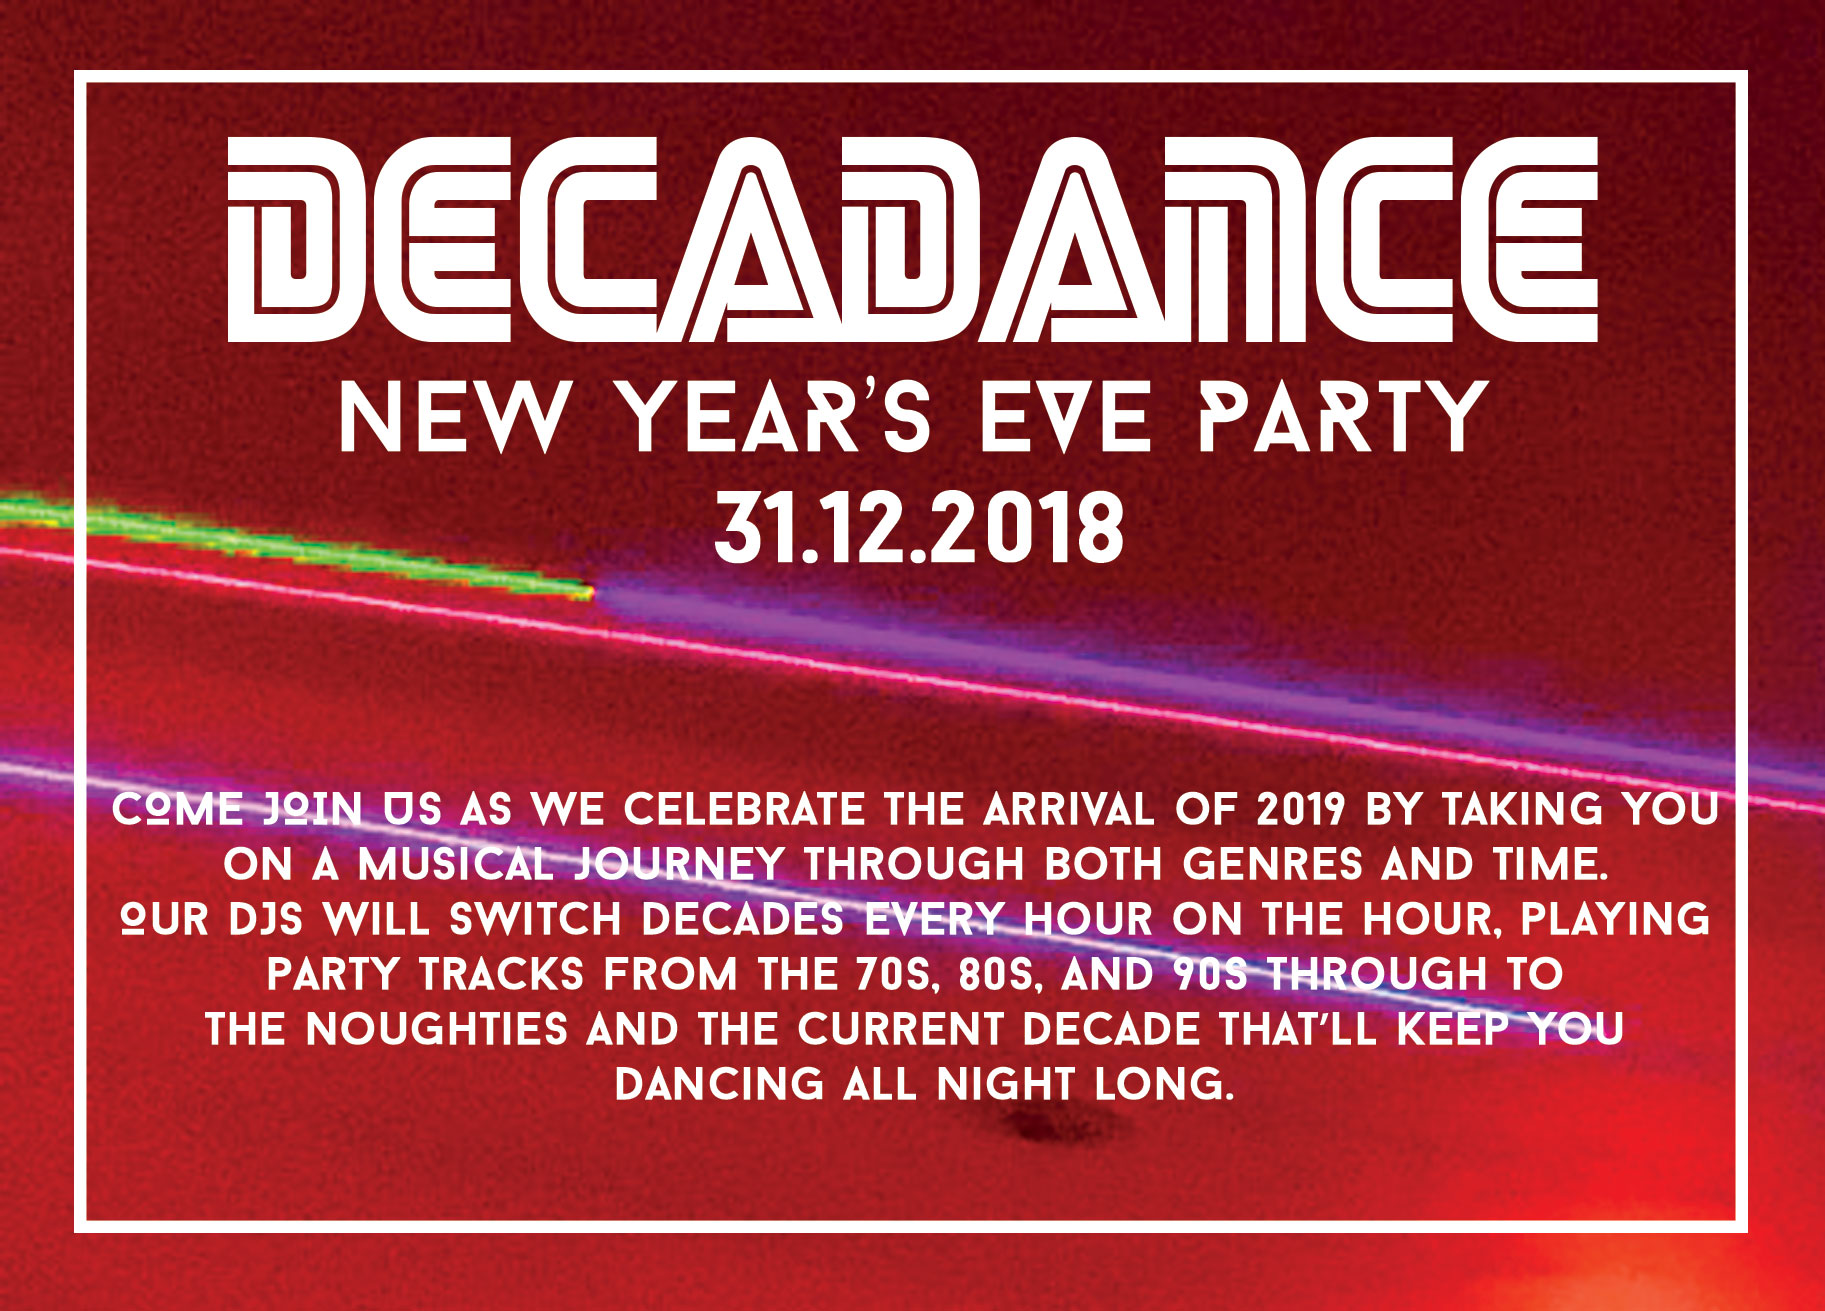 Decadance New Year's Eve Party at Clayton's Marlow